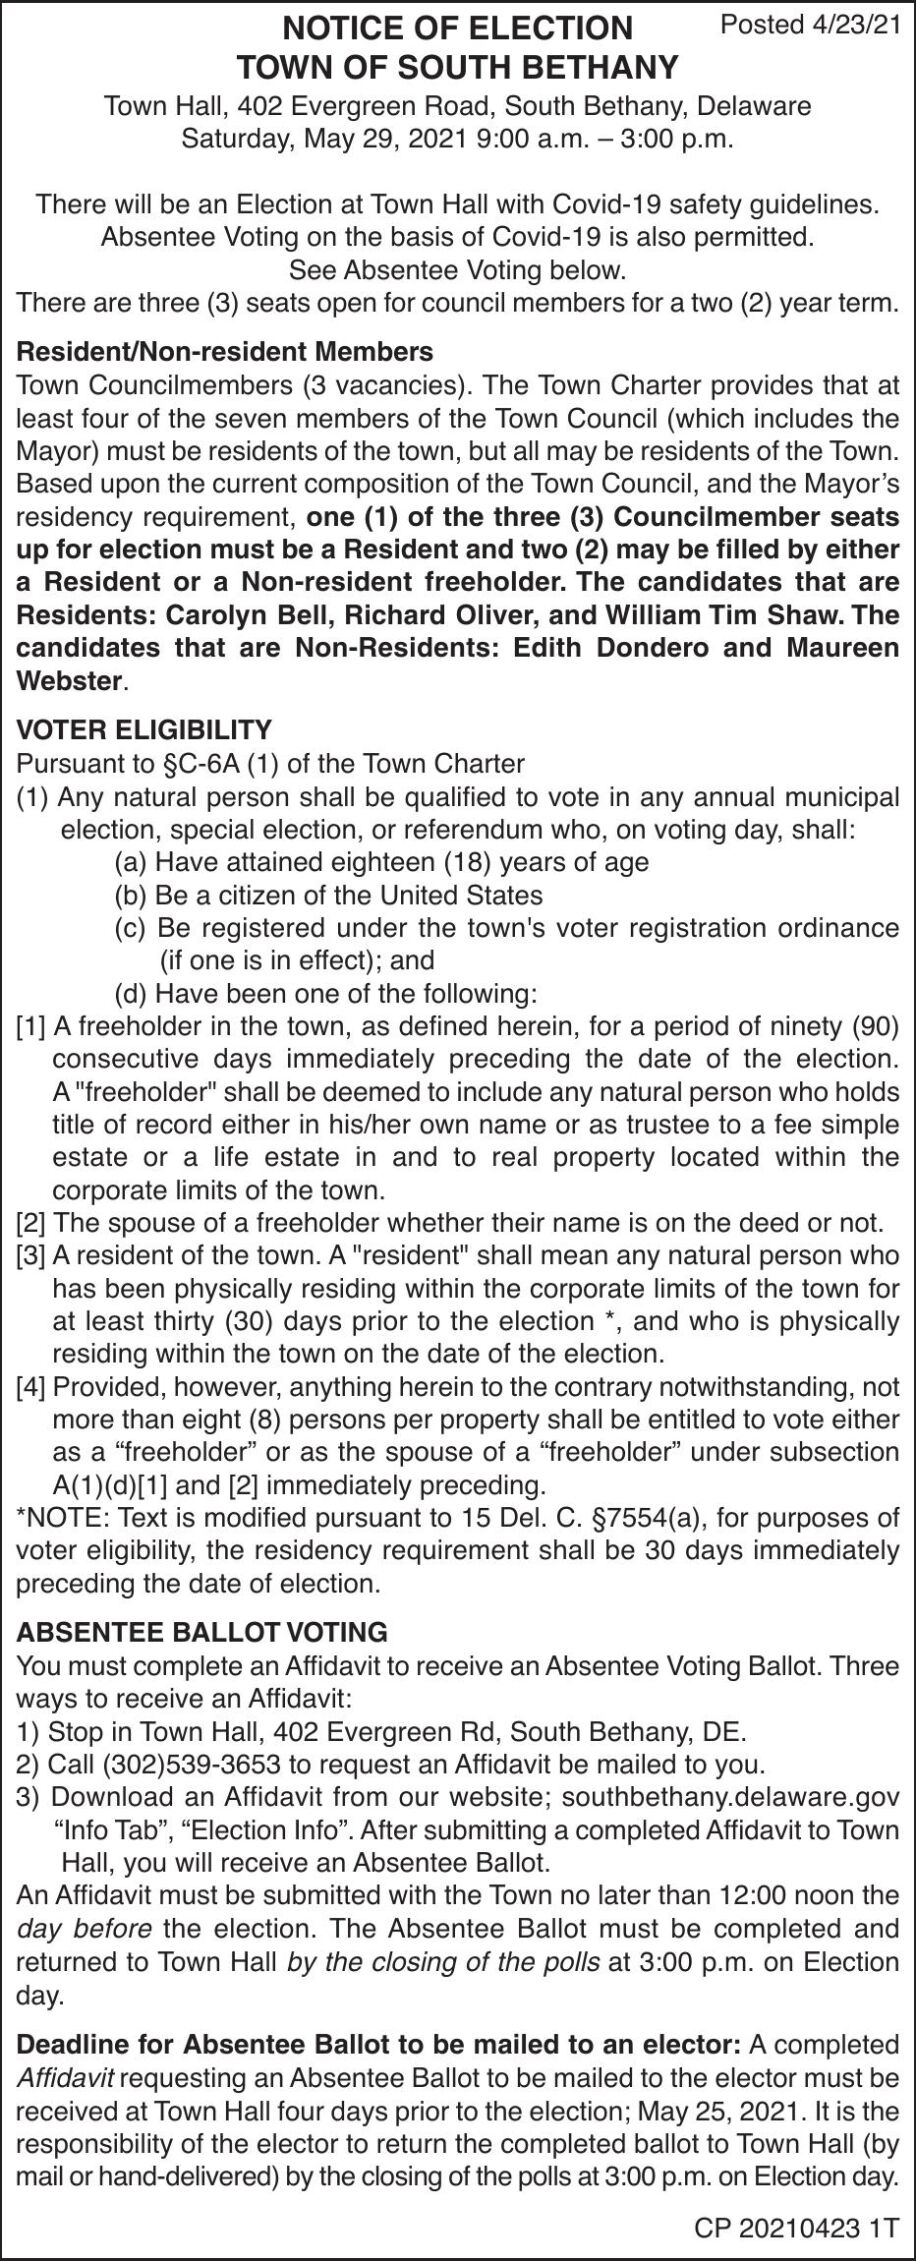 Town of South Bethany - May 29, '21 Election Notice